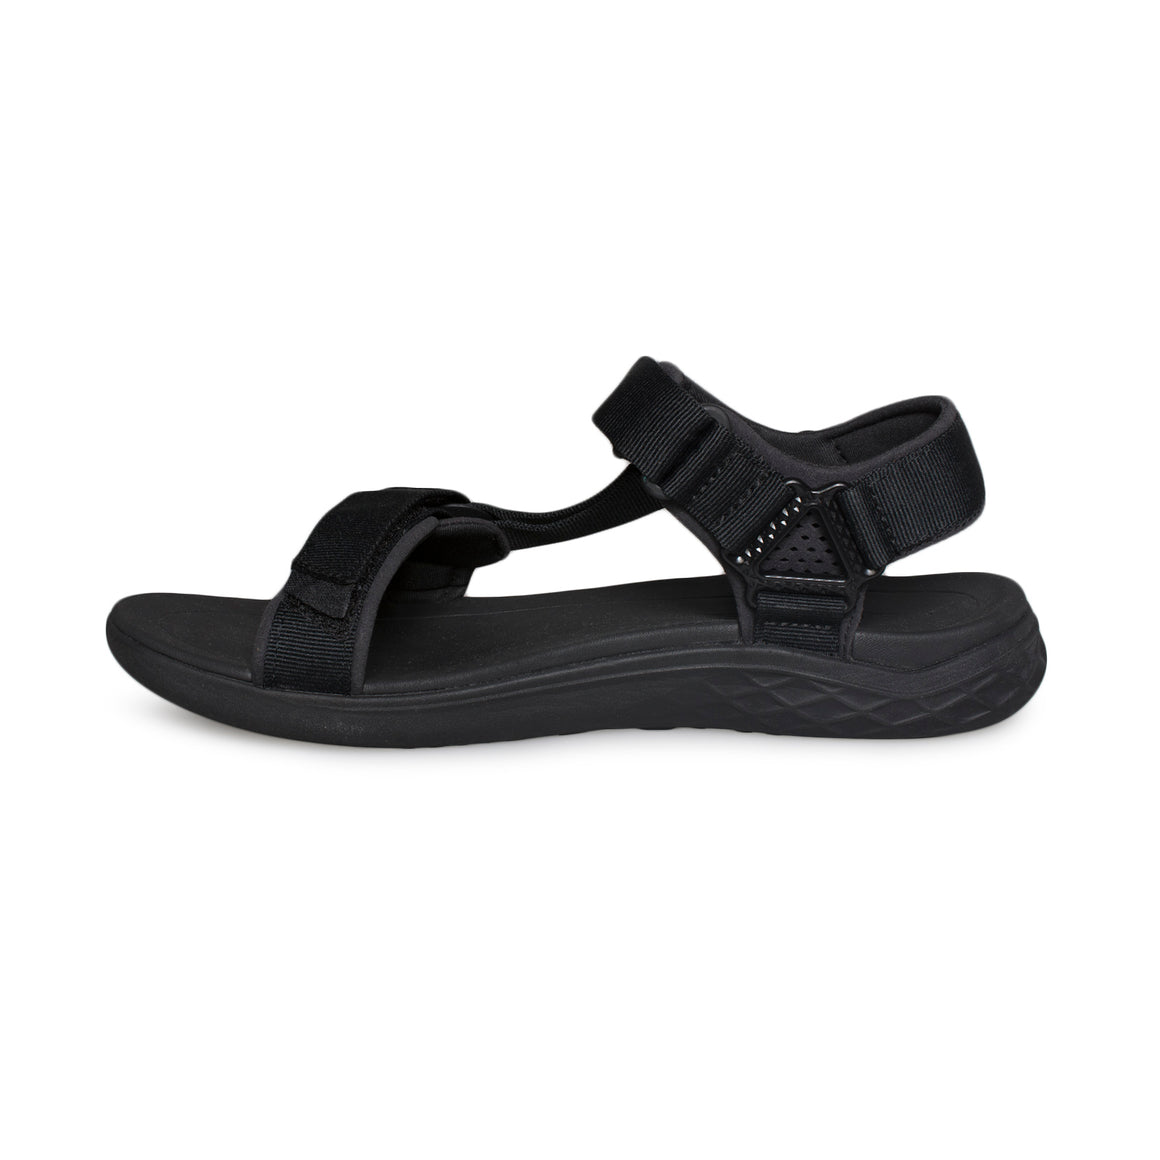 TEVA Terra Float 2 Universal Black Sandal's - Men's